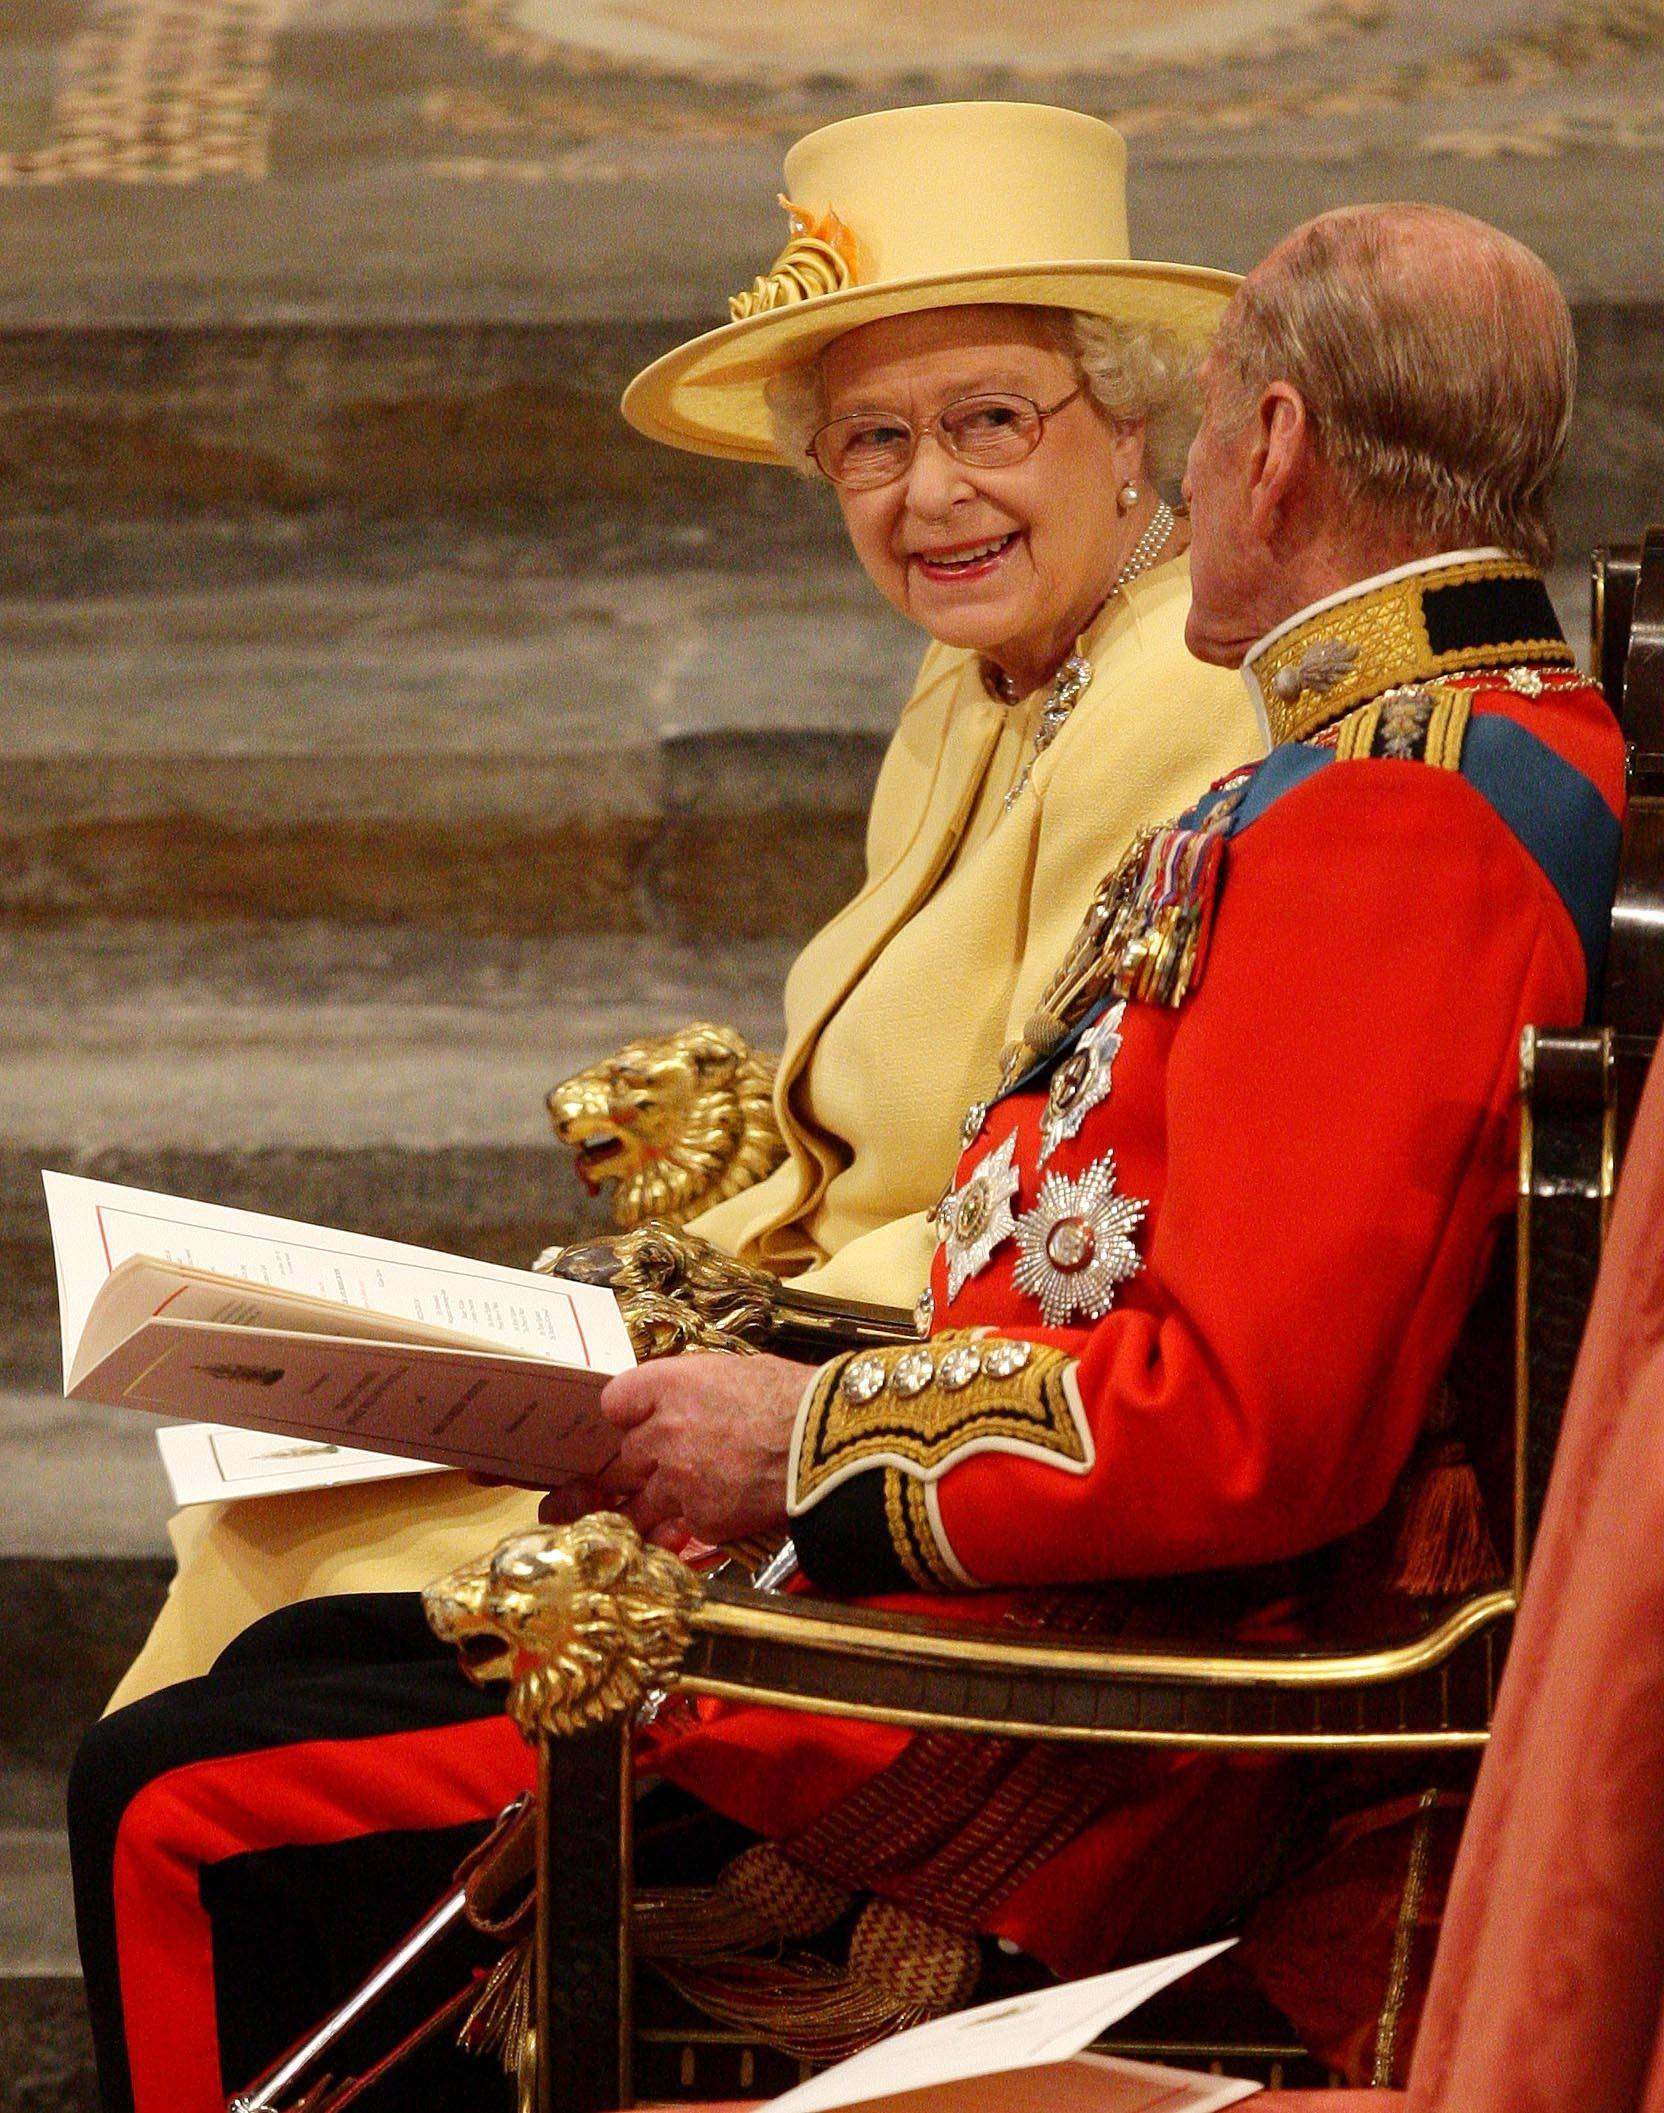 Britian's Queen Elizabeth II, her husband, the Duke of Edinburgh, take their seats at Westminster Abbey, central London before the wedding of the Queen's grandson, Prince William and Kate Middleton, Friday April 29, 2011.